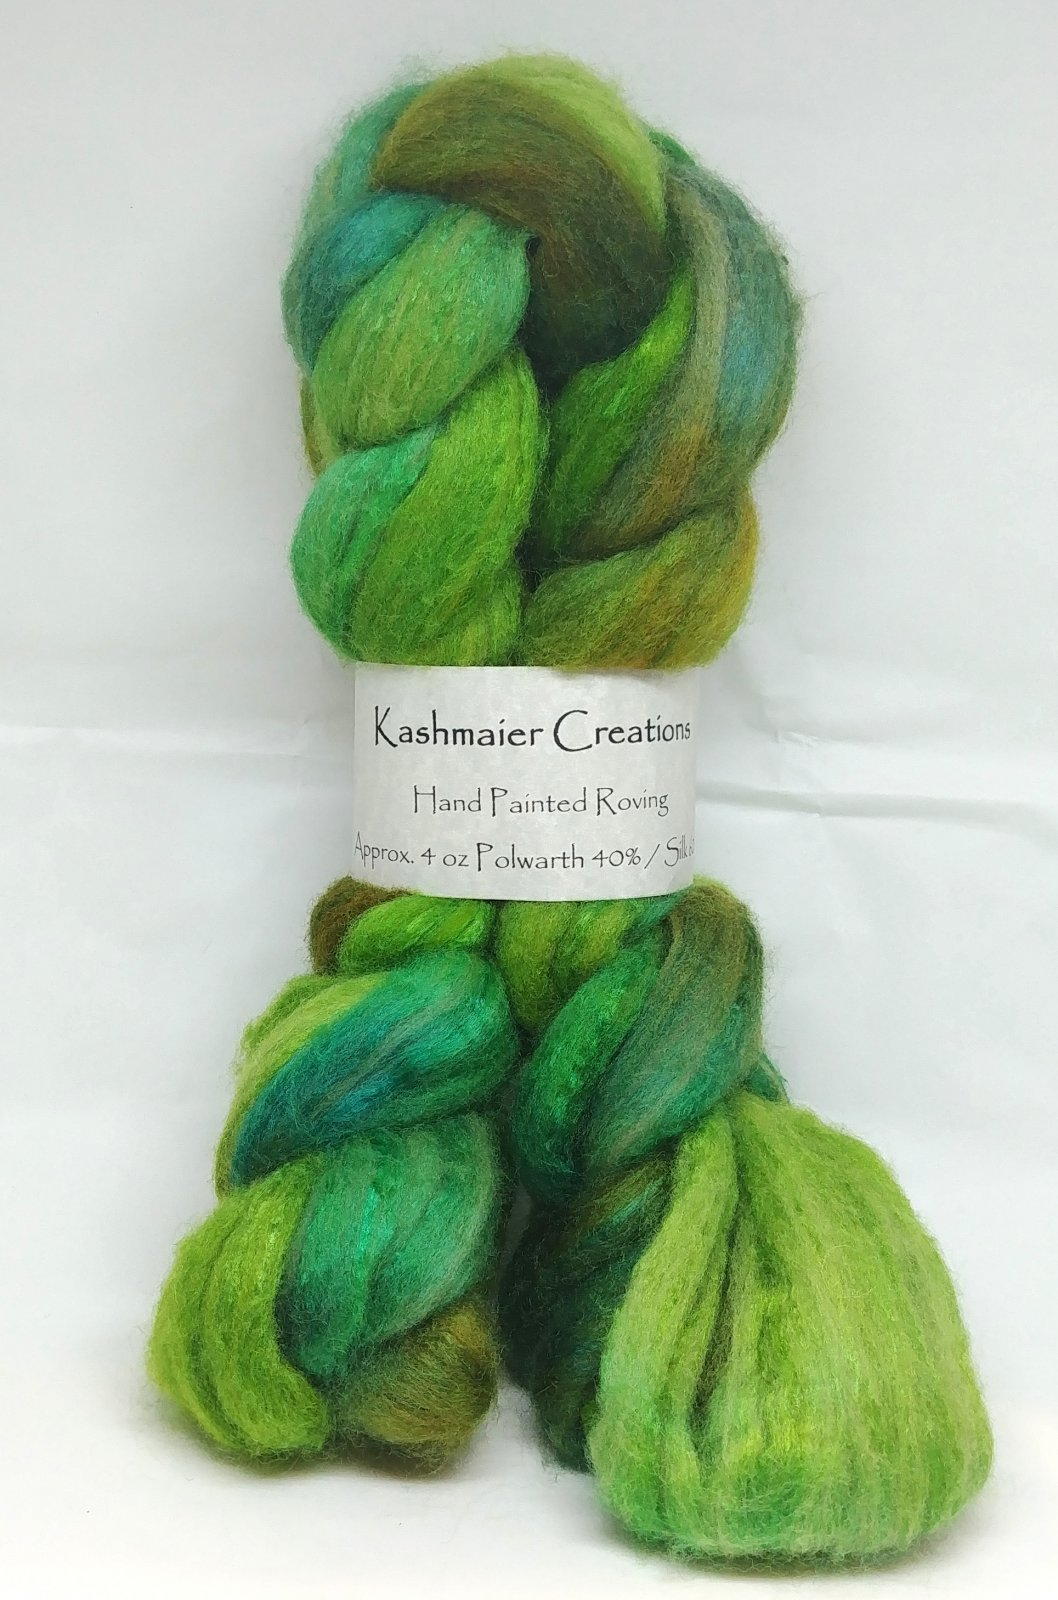 Kashmaier Creations - Hand Painted Roving (Polwarth)